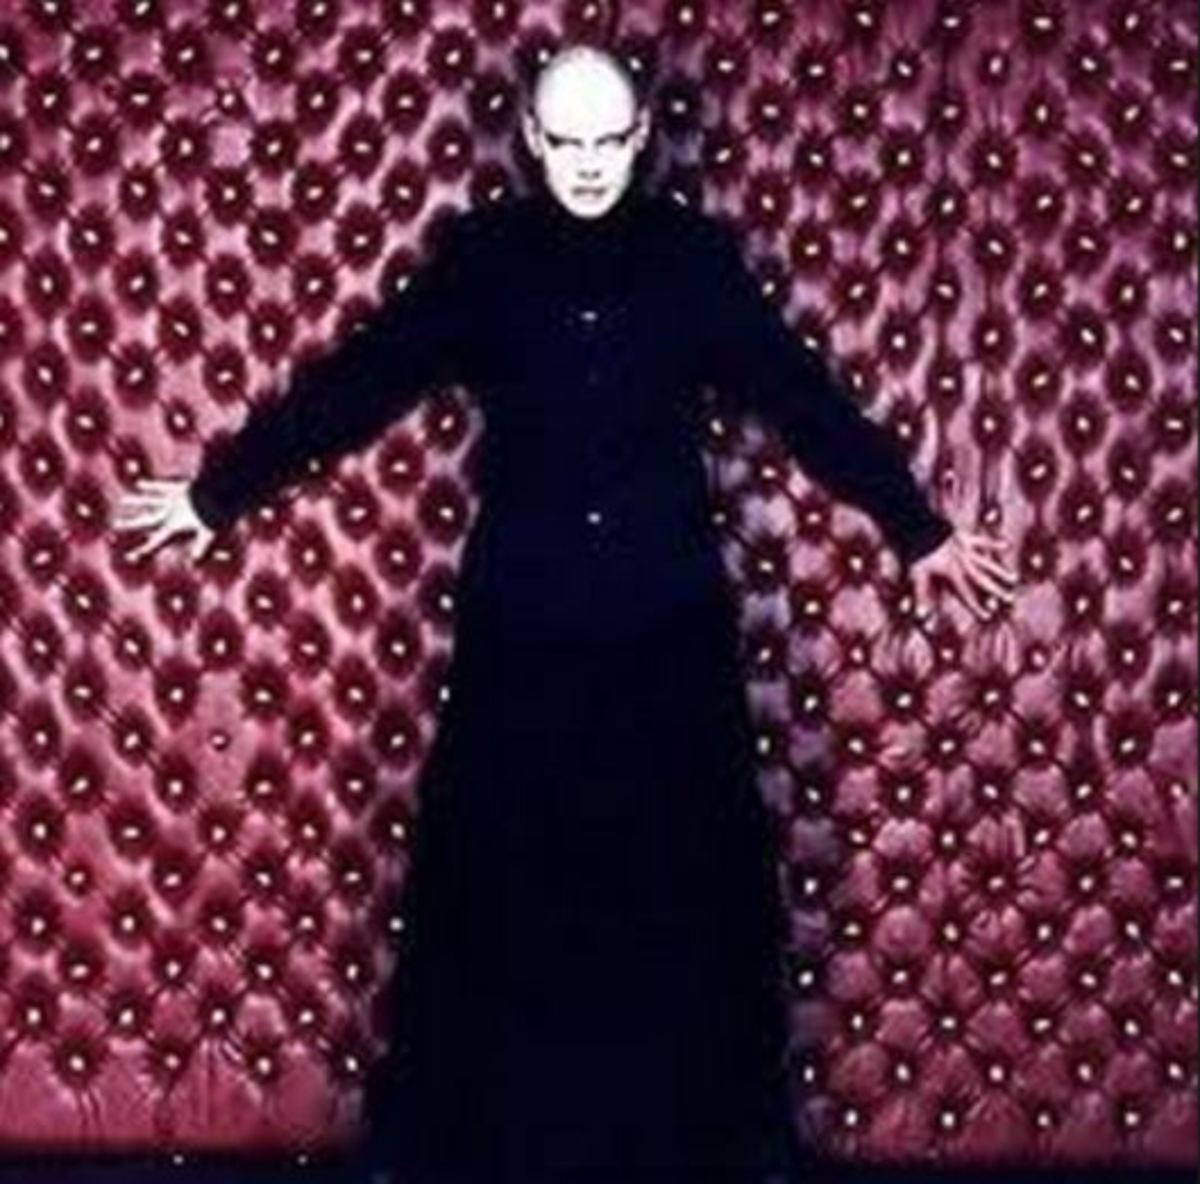 Billy Corgan, Lead Singer